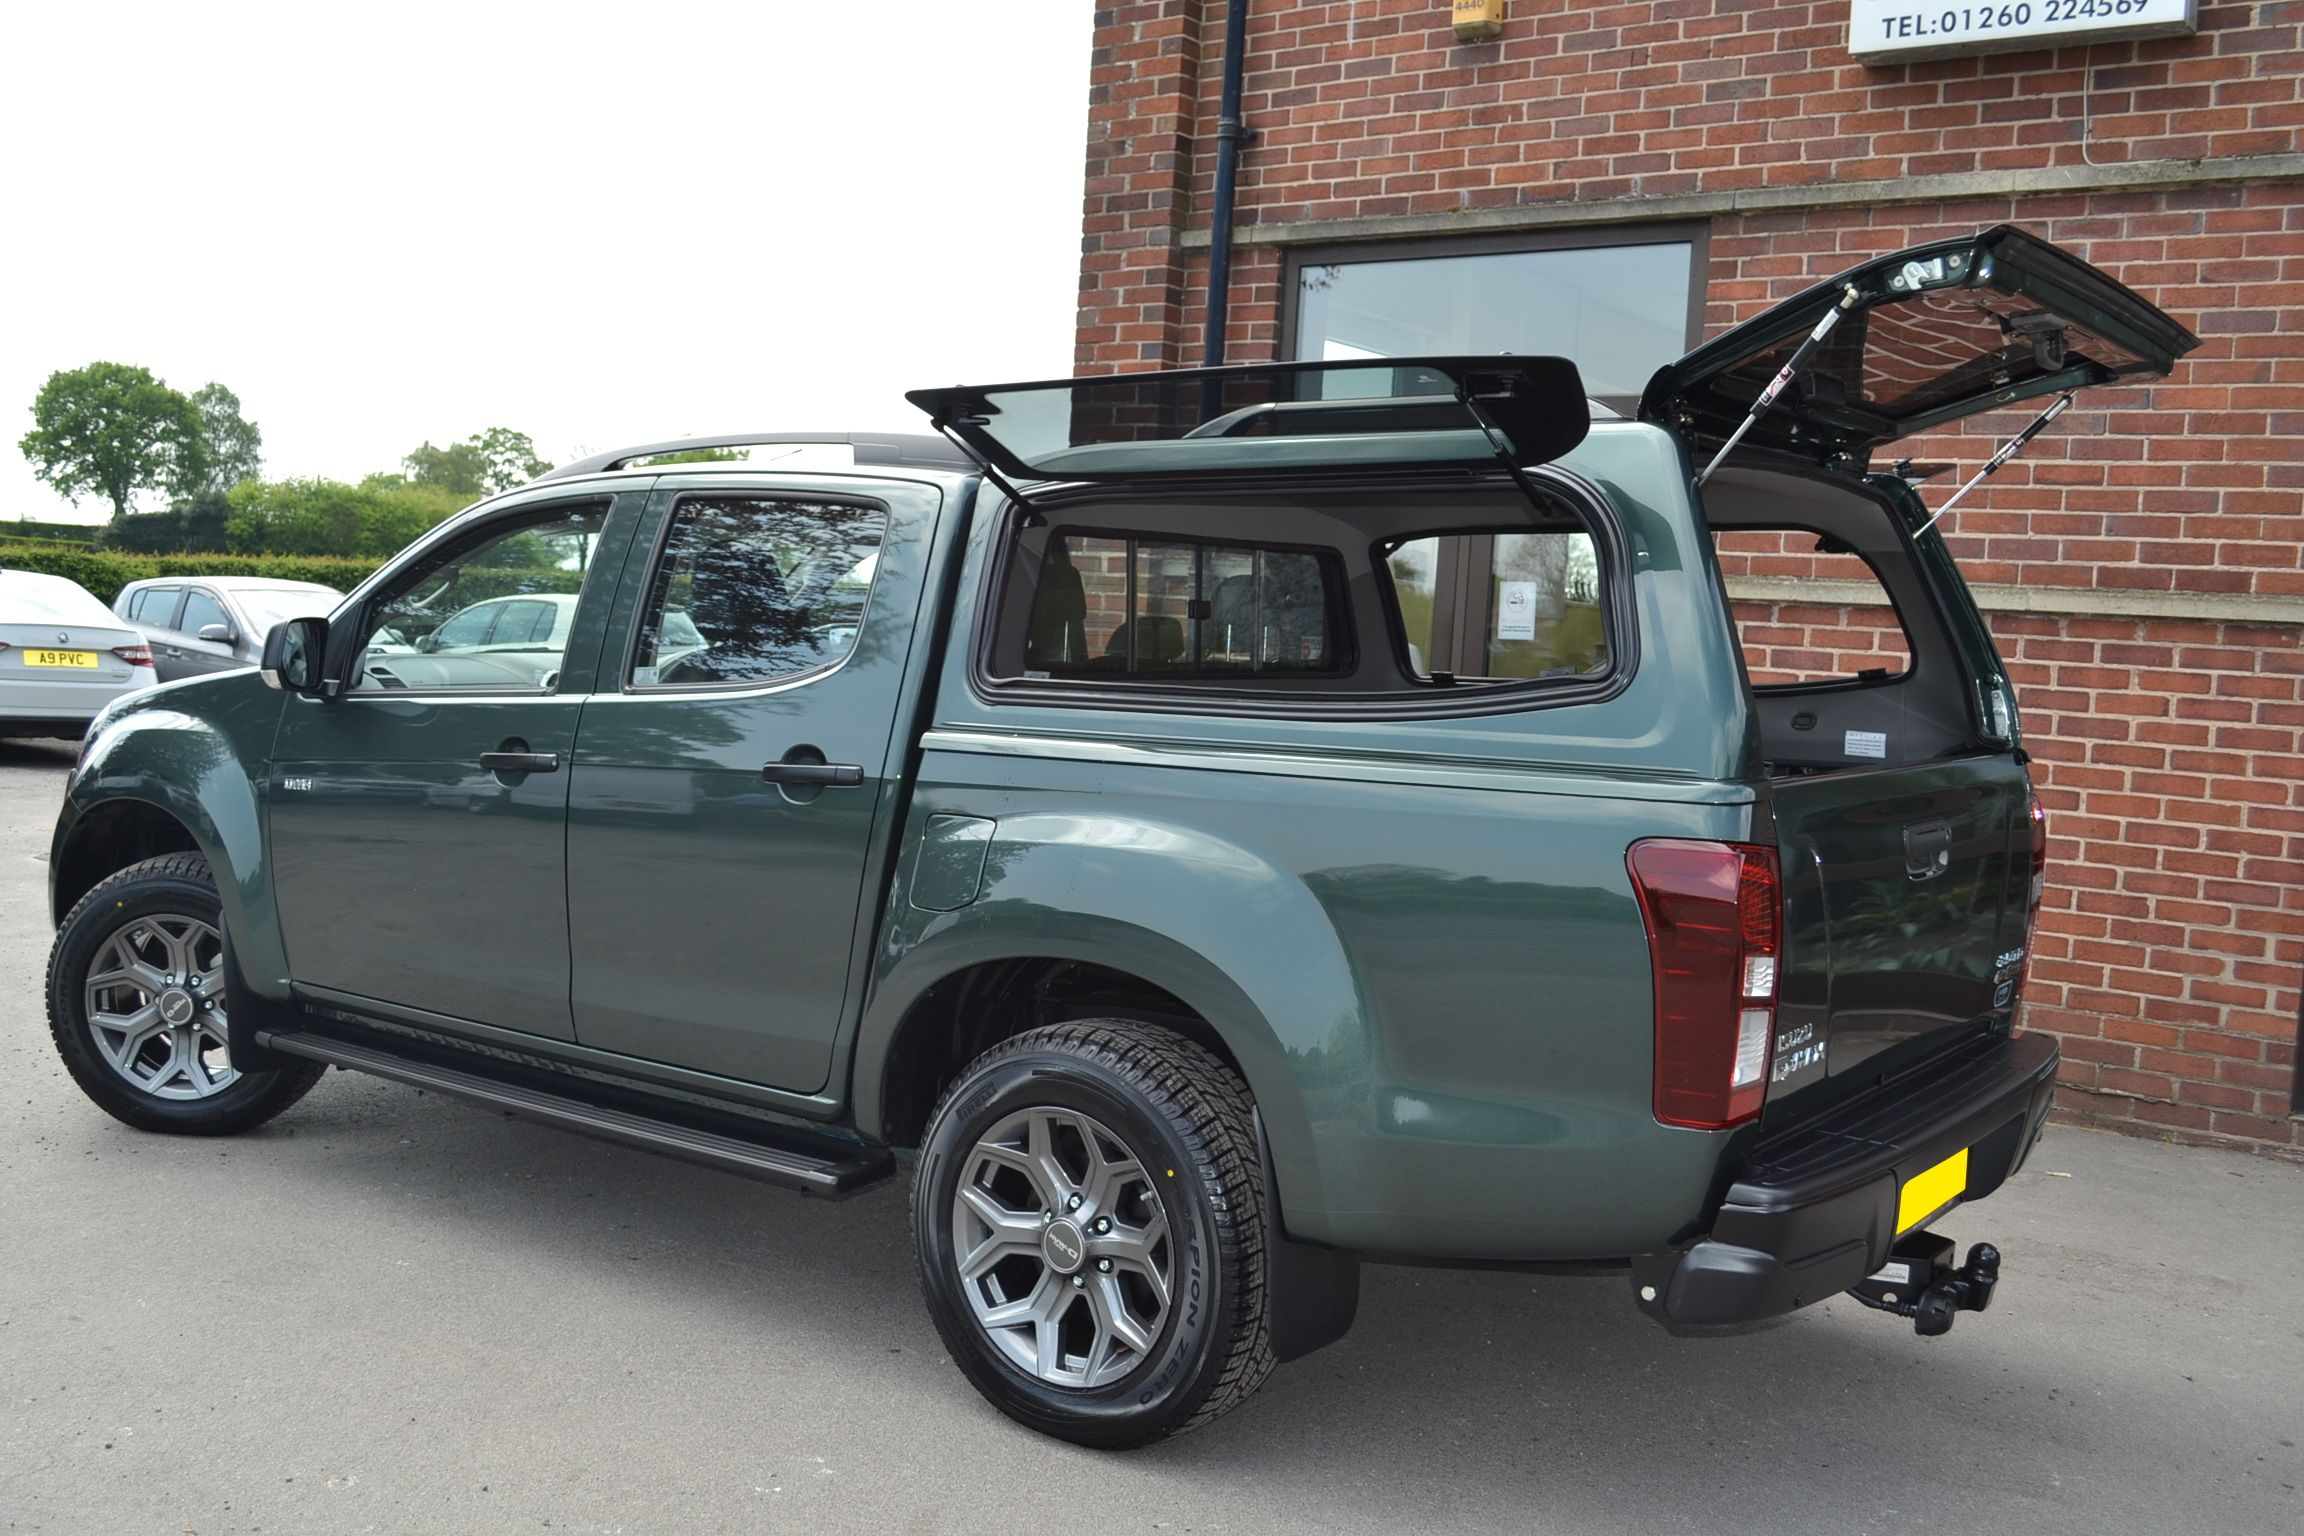 JW Rigby fitted a Isuzu D-Max in Tundra green with a V2 Gullwing Canopy & JW Rigby fitted a Isuzu D-Max in Tundra green with a V2 Gullwing ...